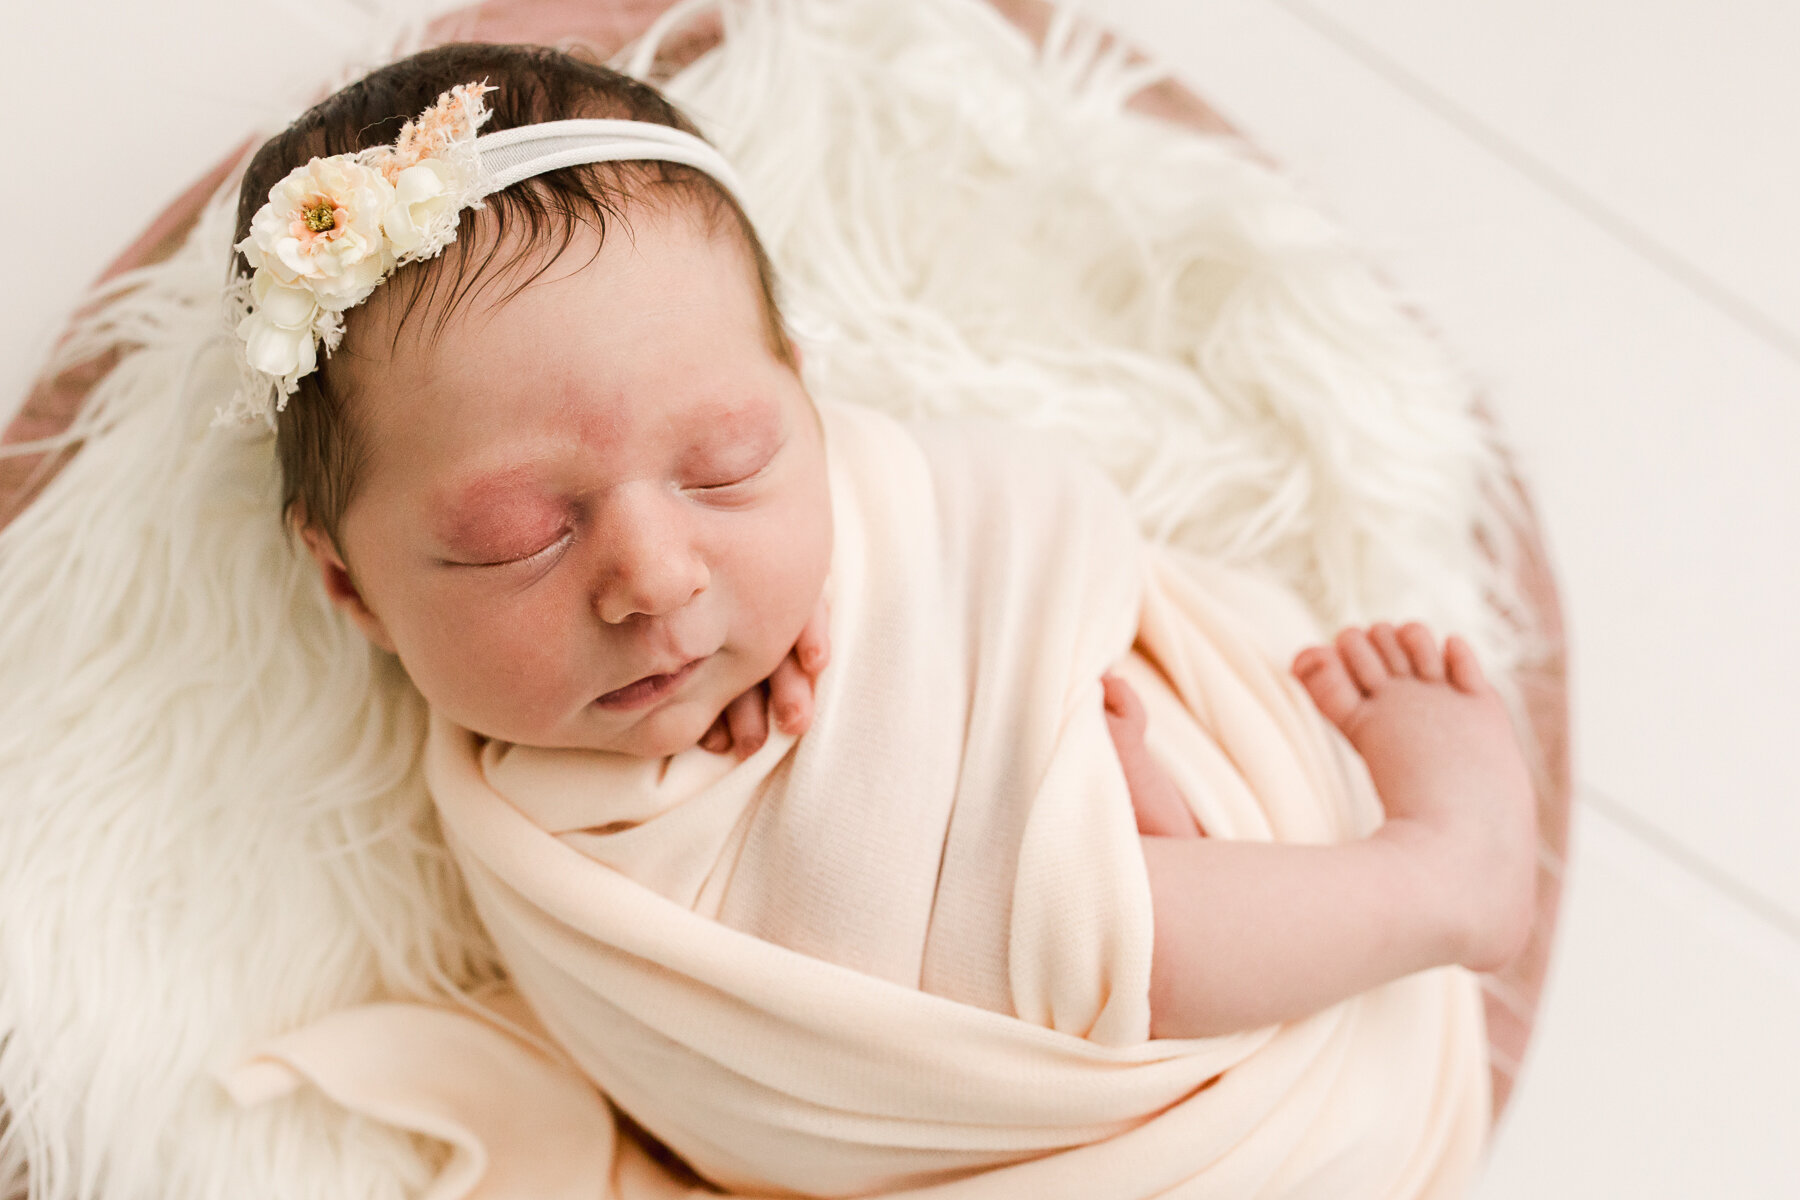 Plano_newborn_photographer_infant_photographers_8.jpg